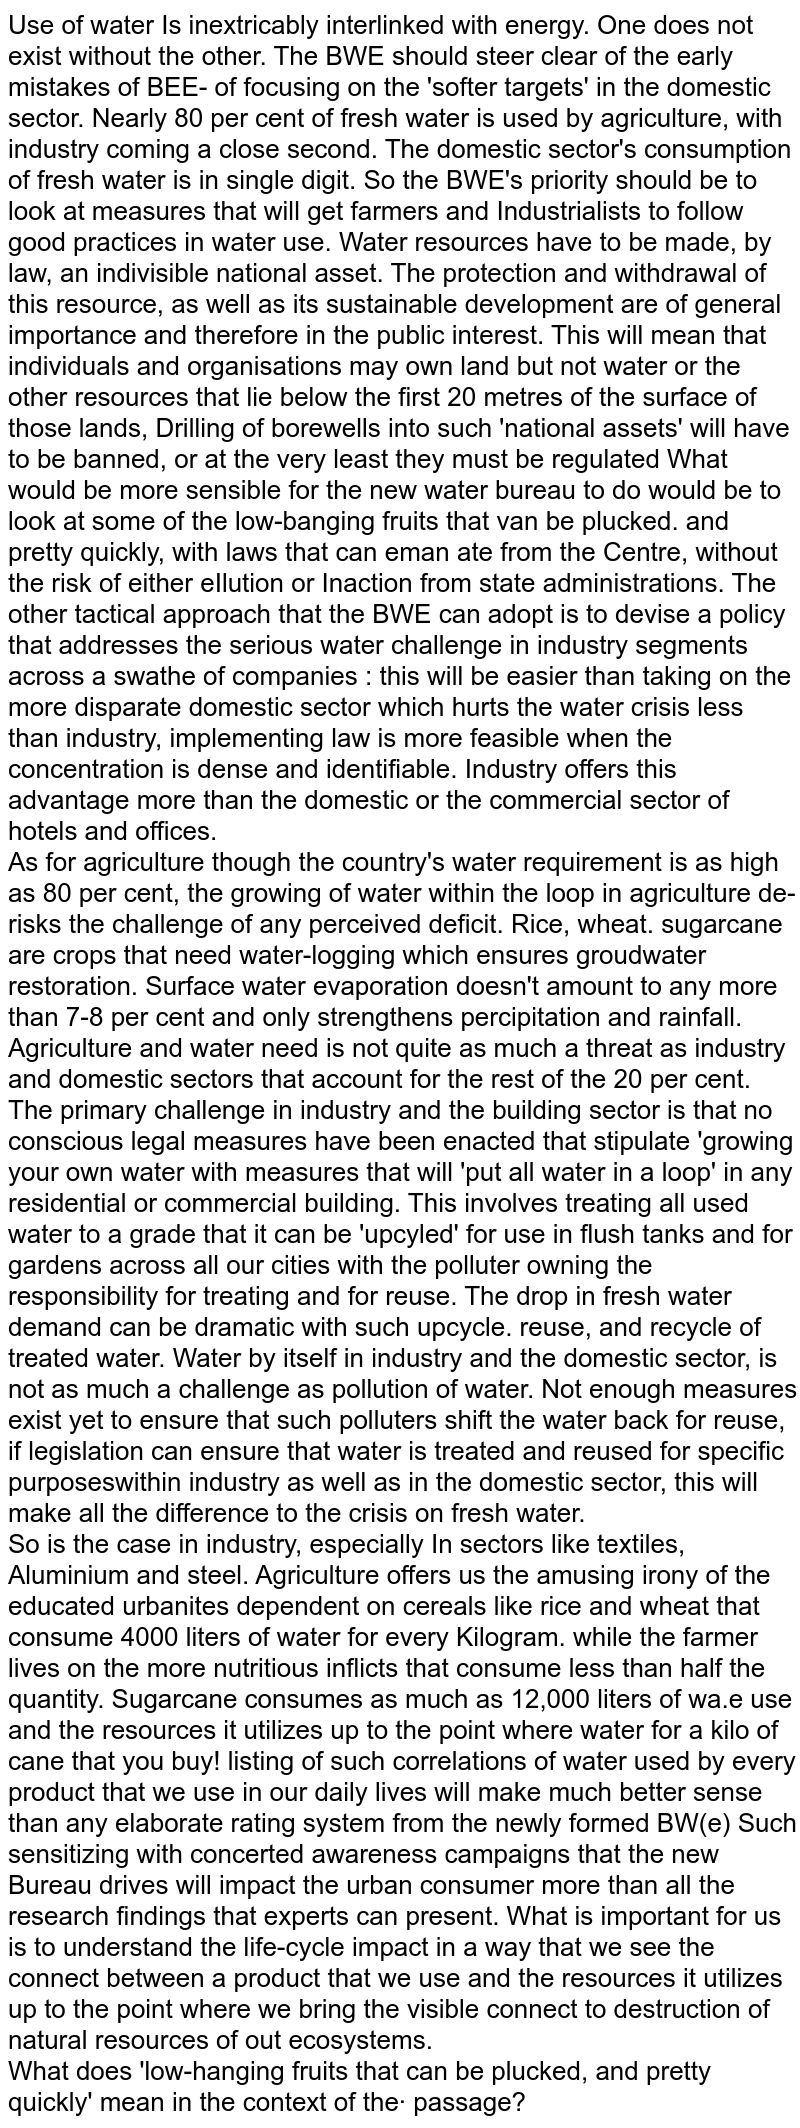 Use of water Is inextricably interlinked with energy. One does not exist without the other. The BWE should steer clear of the early mistakes of BEE- of focusing on the 'softer targets' in the domestic sector. Nearly 80 per cent of fresh water is used by agriculture, with industry coming a close second. The domestic sector's consumption of fresh water is in single digit. So the BWE's priority should be to look at measures that will get farmers and Industrialists to follow good practices in water use. Water resources have to be made, by law, an indivisible national asset. The protection and withdrawal of this resource, as well as its sustainable development are of general importance and therefore in the public interest. This will mean that individuals and organisations may own land but not water or the other resources that lie below the first 20 metres of the surface of those lands, Drilling of borewells into such 'national assets' will have to be banned, or at the very least they must be regulated What would be more sensible for the new water bureau to do would be to look at some of the low-banging fruits that van be plucked. and pretty quickly, with laws that can eman ate from the Centre, without the risk of either eIlution or Inaction from state administrations. The other tactical approach that the BWE can adopt is to devise a policy that addresses the serious water challenge in industry segments across a swathe of companies : this will be easier than taking on the more disparate domestic sector which hurts the water crisis less than industry, implementing law is more feasible when the concentration is dense and identifiable. Industry offers this advantage more than the domestic or the commercial sector of hotels and offices. <br> As for agriculture though the country's water requirement is as high as 80 per cent, the growing of water within the loop in agriculture de-risks the challenge of any perceived deficit. Rice, wheat. sugarcane are crops that need water-log